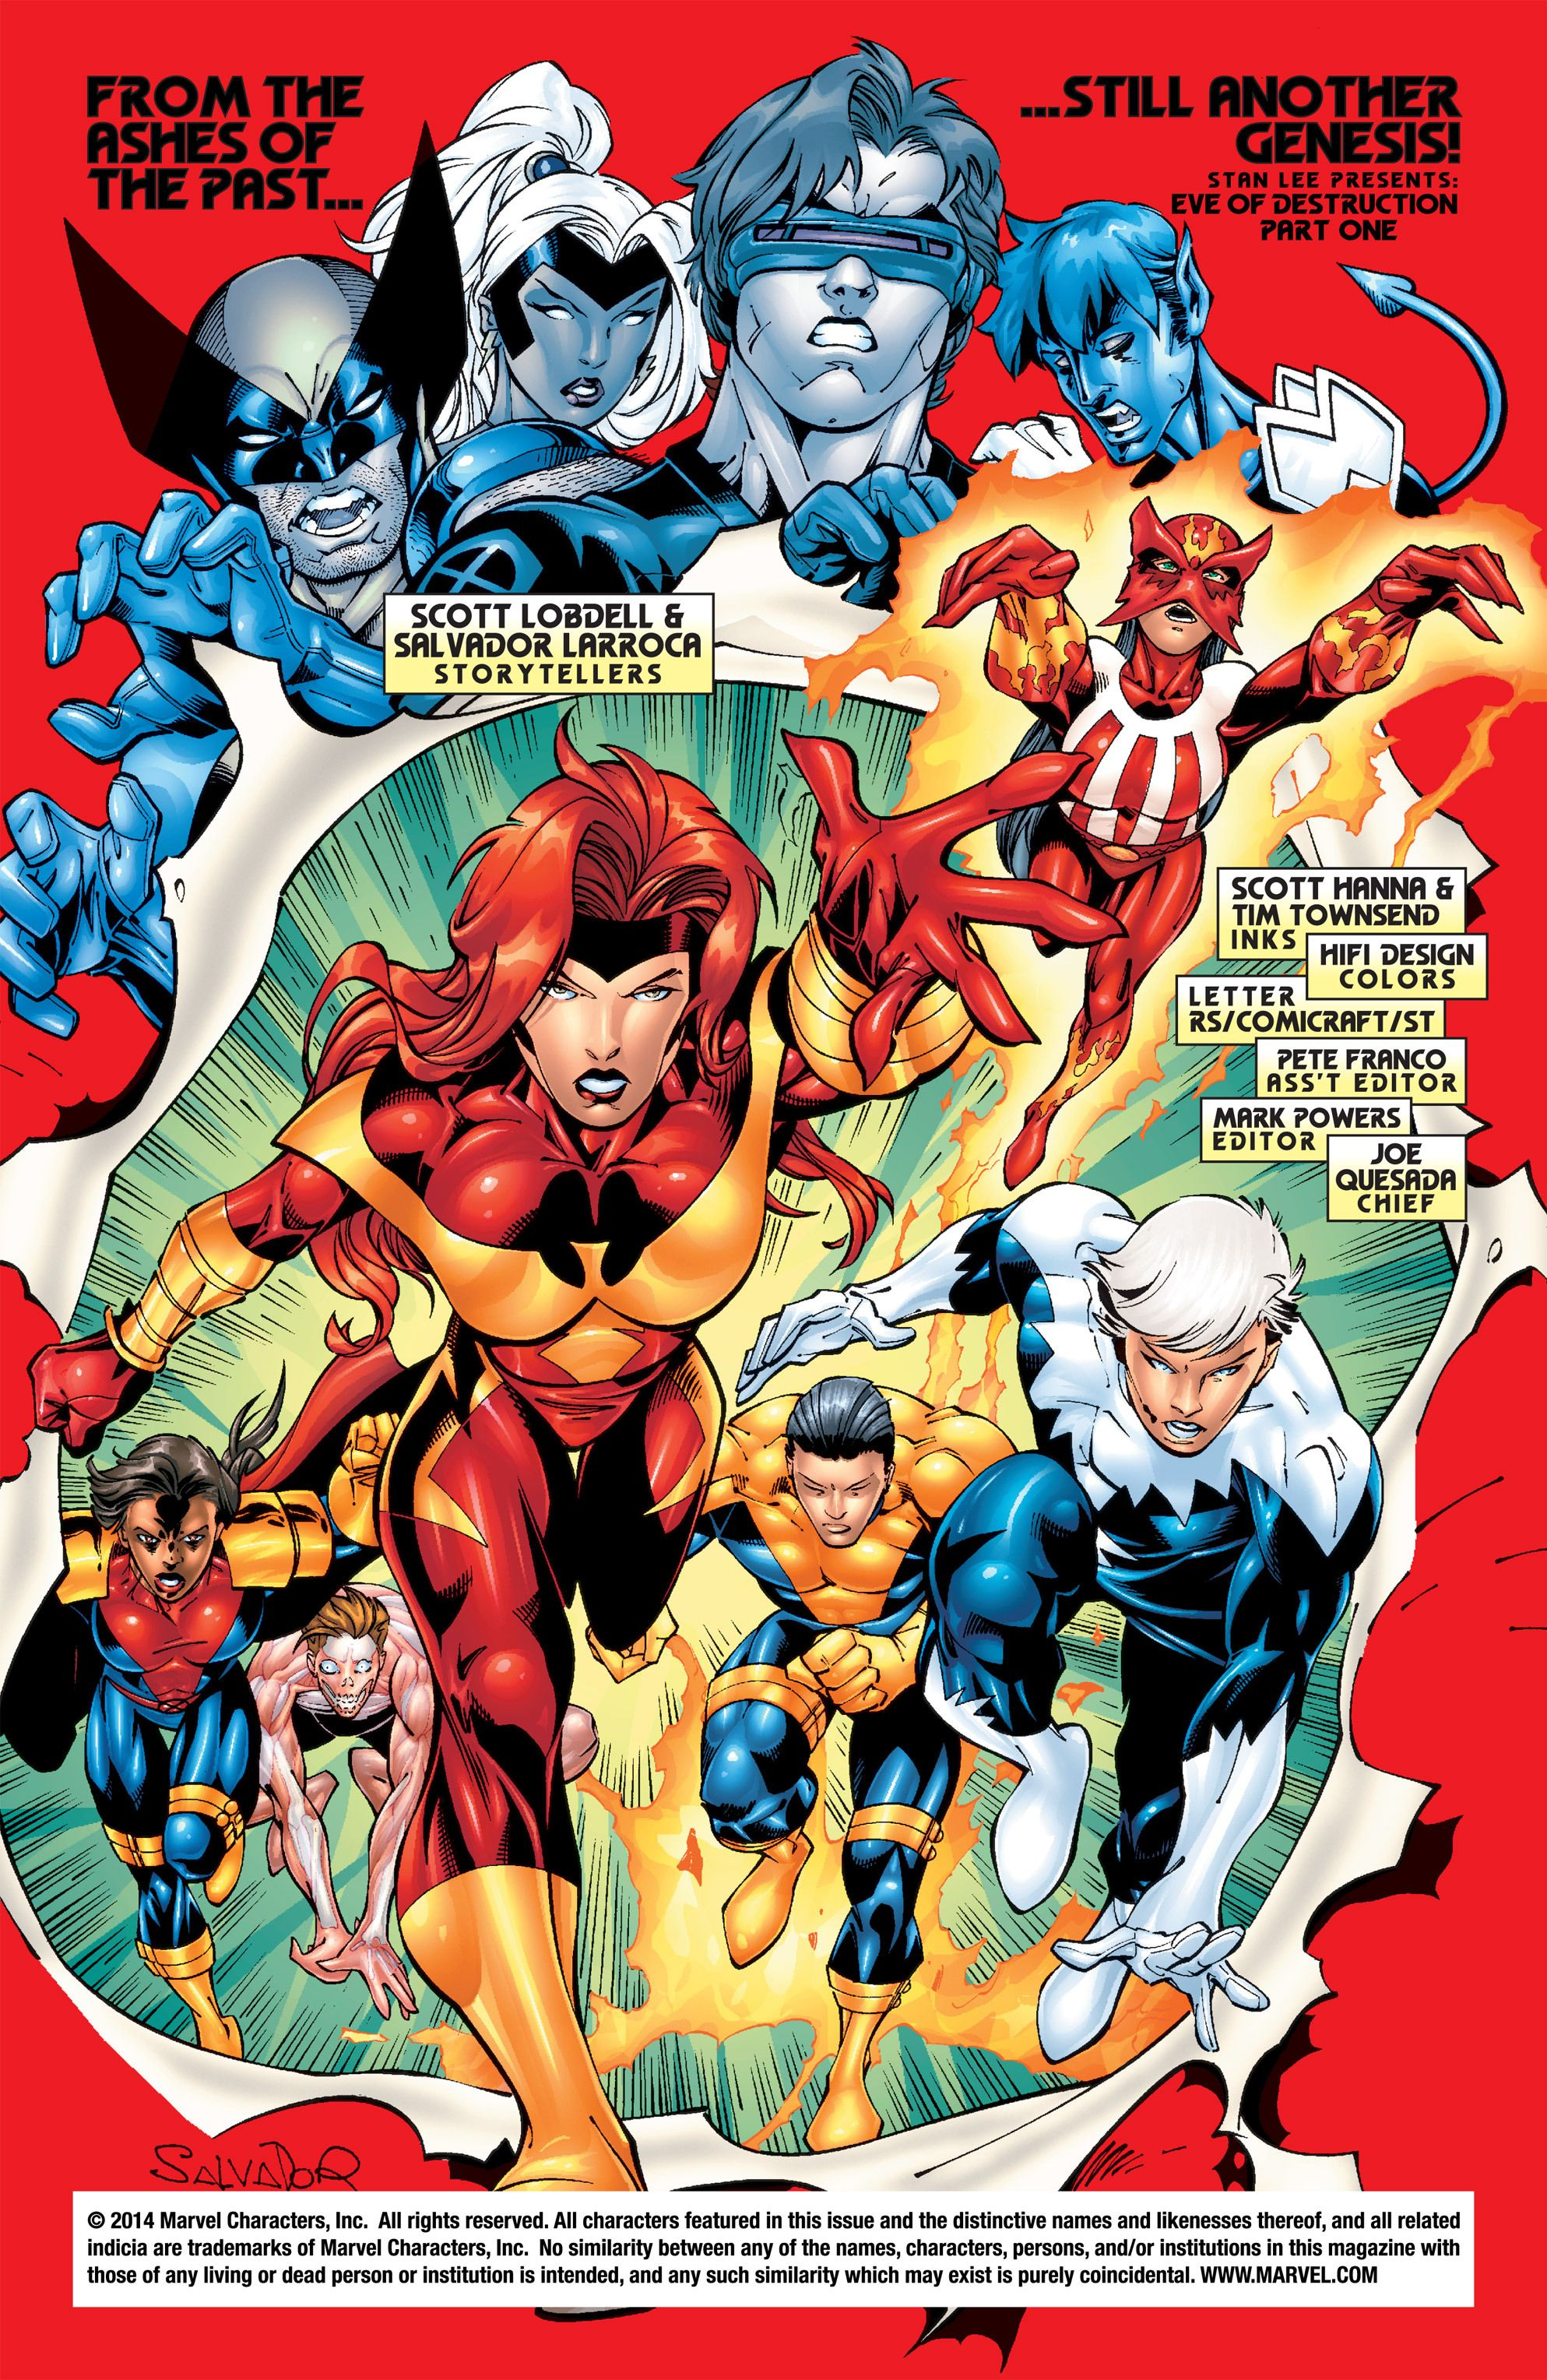 Uncanny X Men Vol 1 392 Art By Salvador Larroca Scott Hanna Tim Townsend Marvel Comics Comic Book Heroes The Uncanny